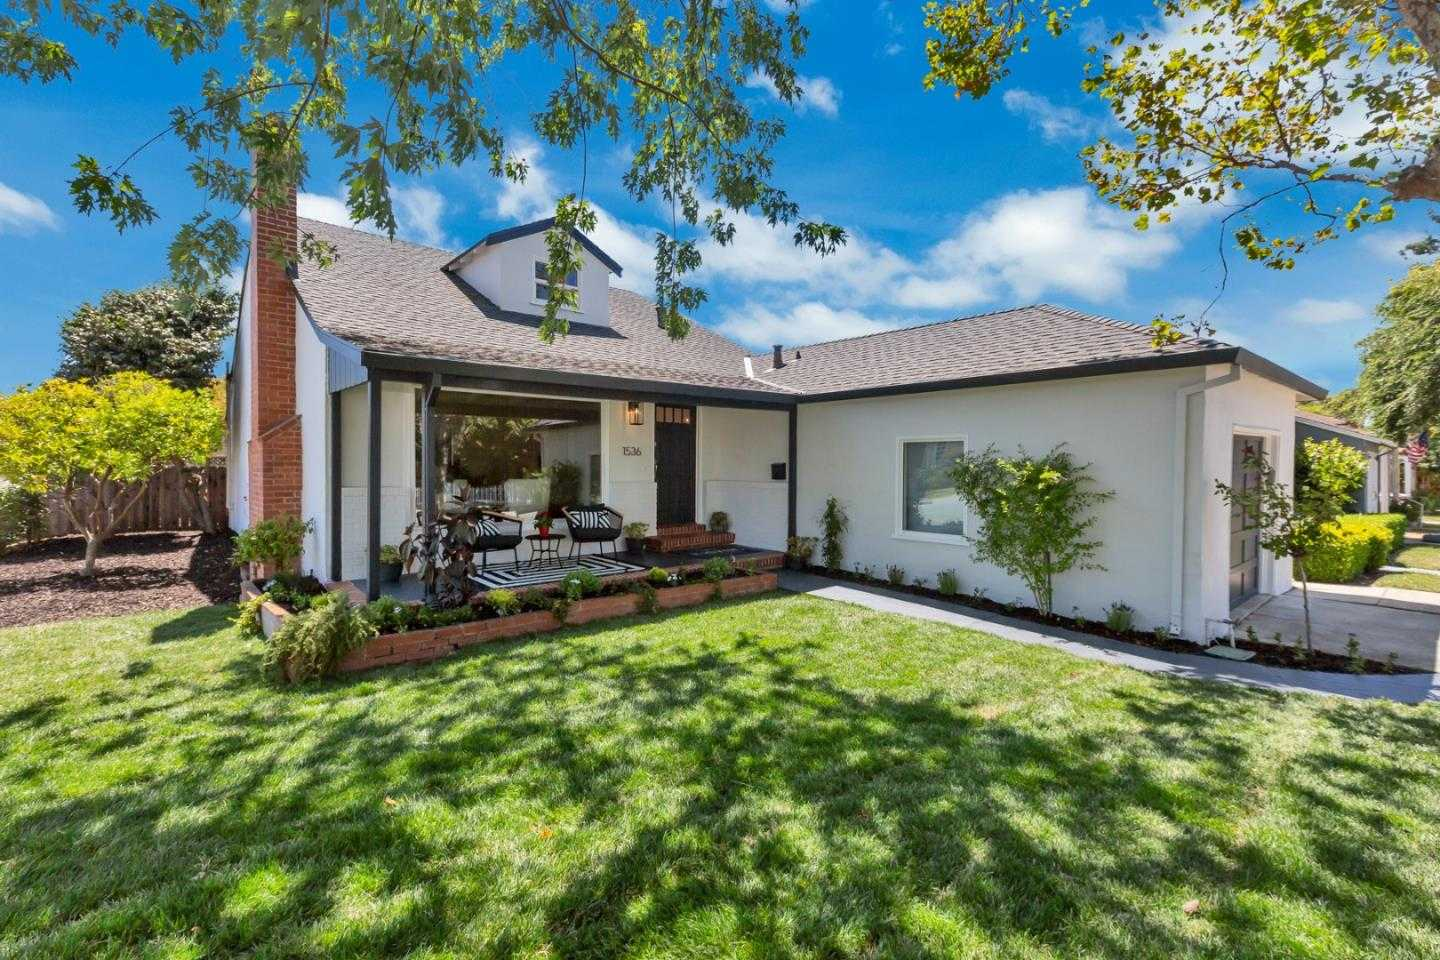 $1,249,000 - 5Br/2Ba -  for Sale in San Mateo